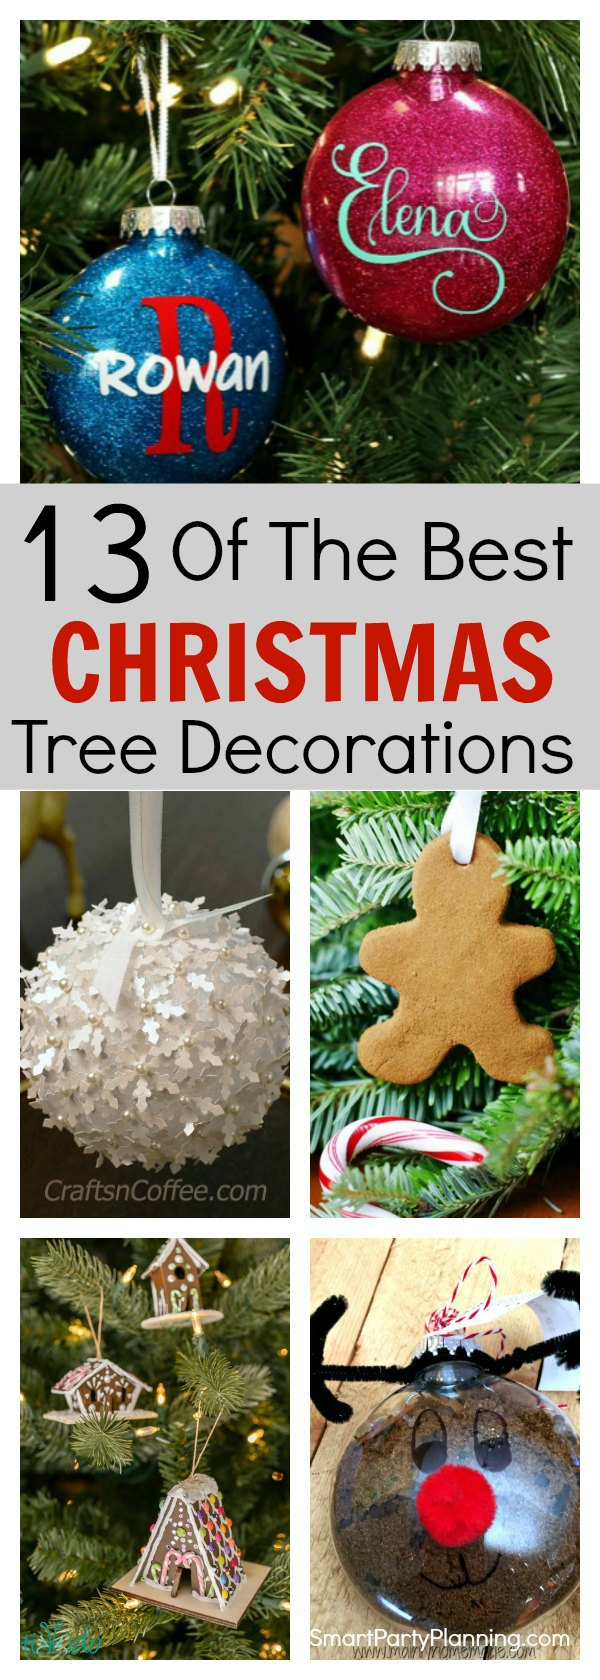 13 of the best christmas tree decorations width600 height - Easy Christmas Tree Decorations